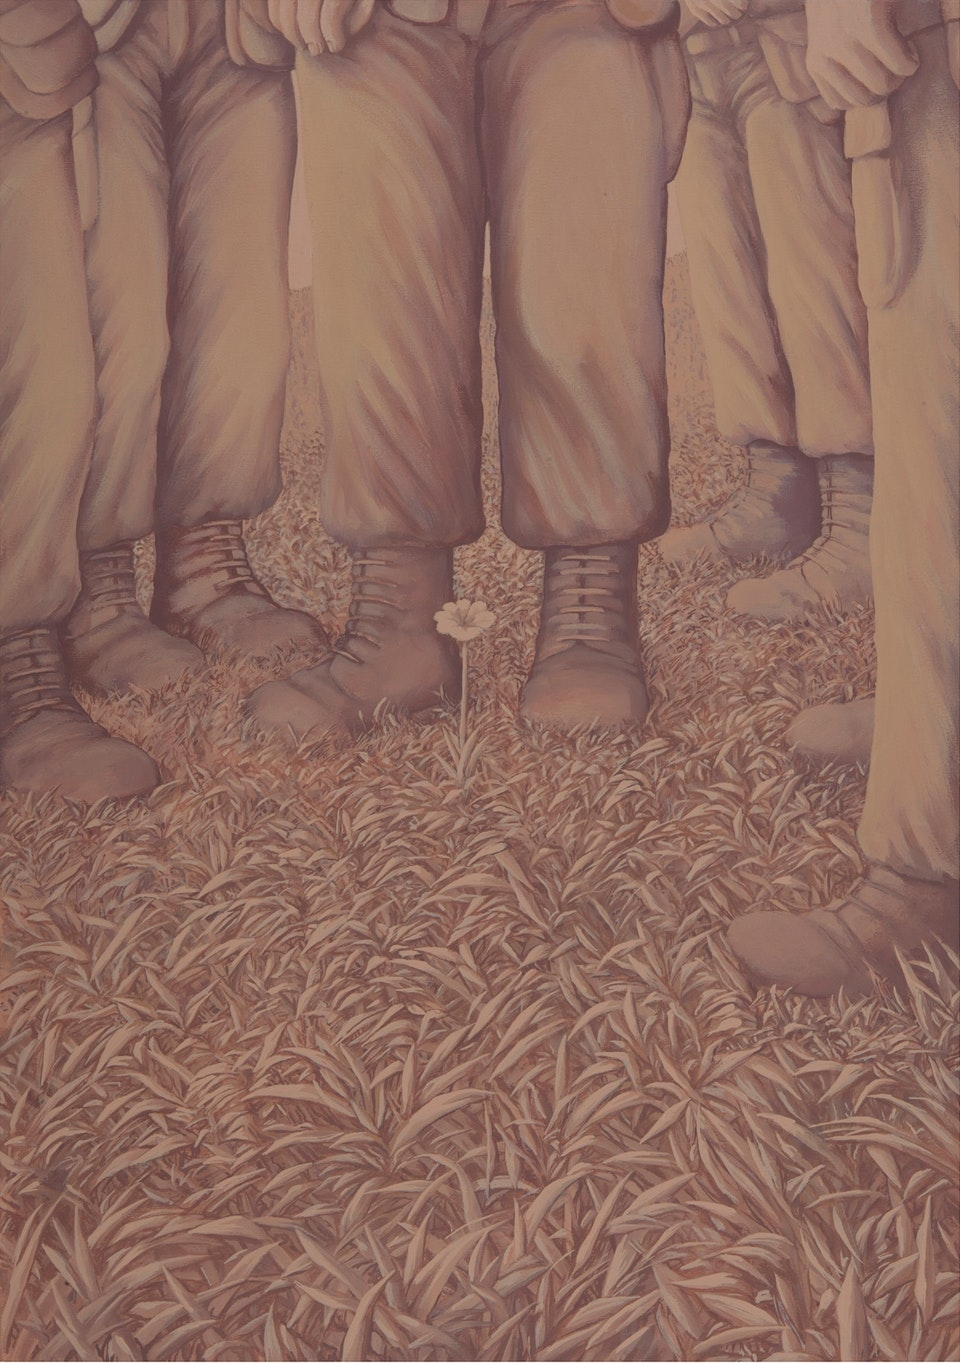 sequences _Why We Will Win - The principal - acrylic on canvas -  polyptych - each  cm. 50x70 - 2011